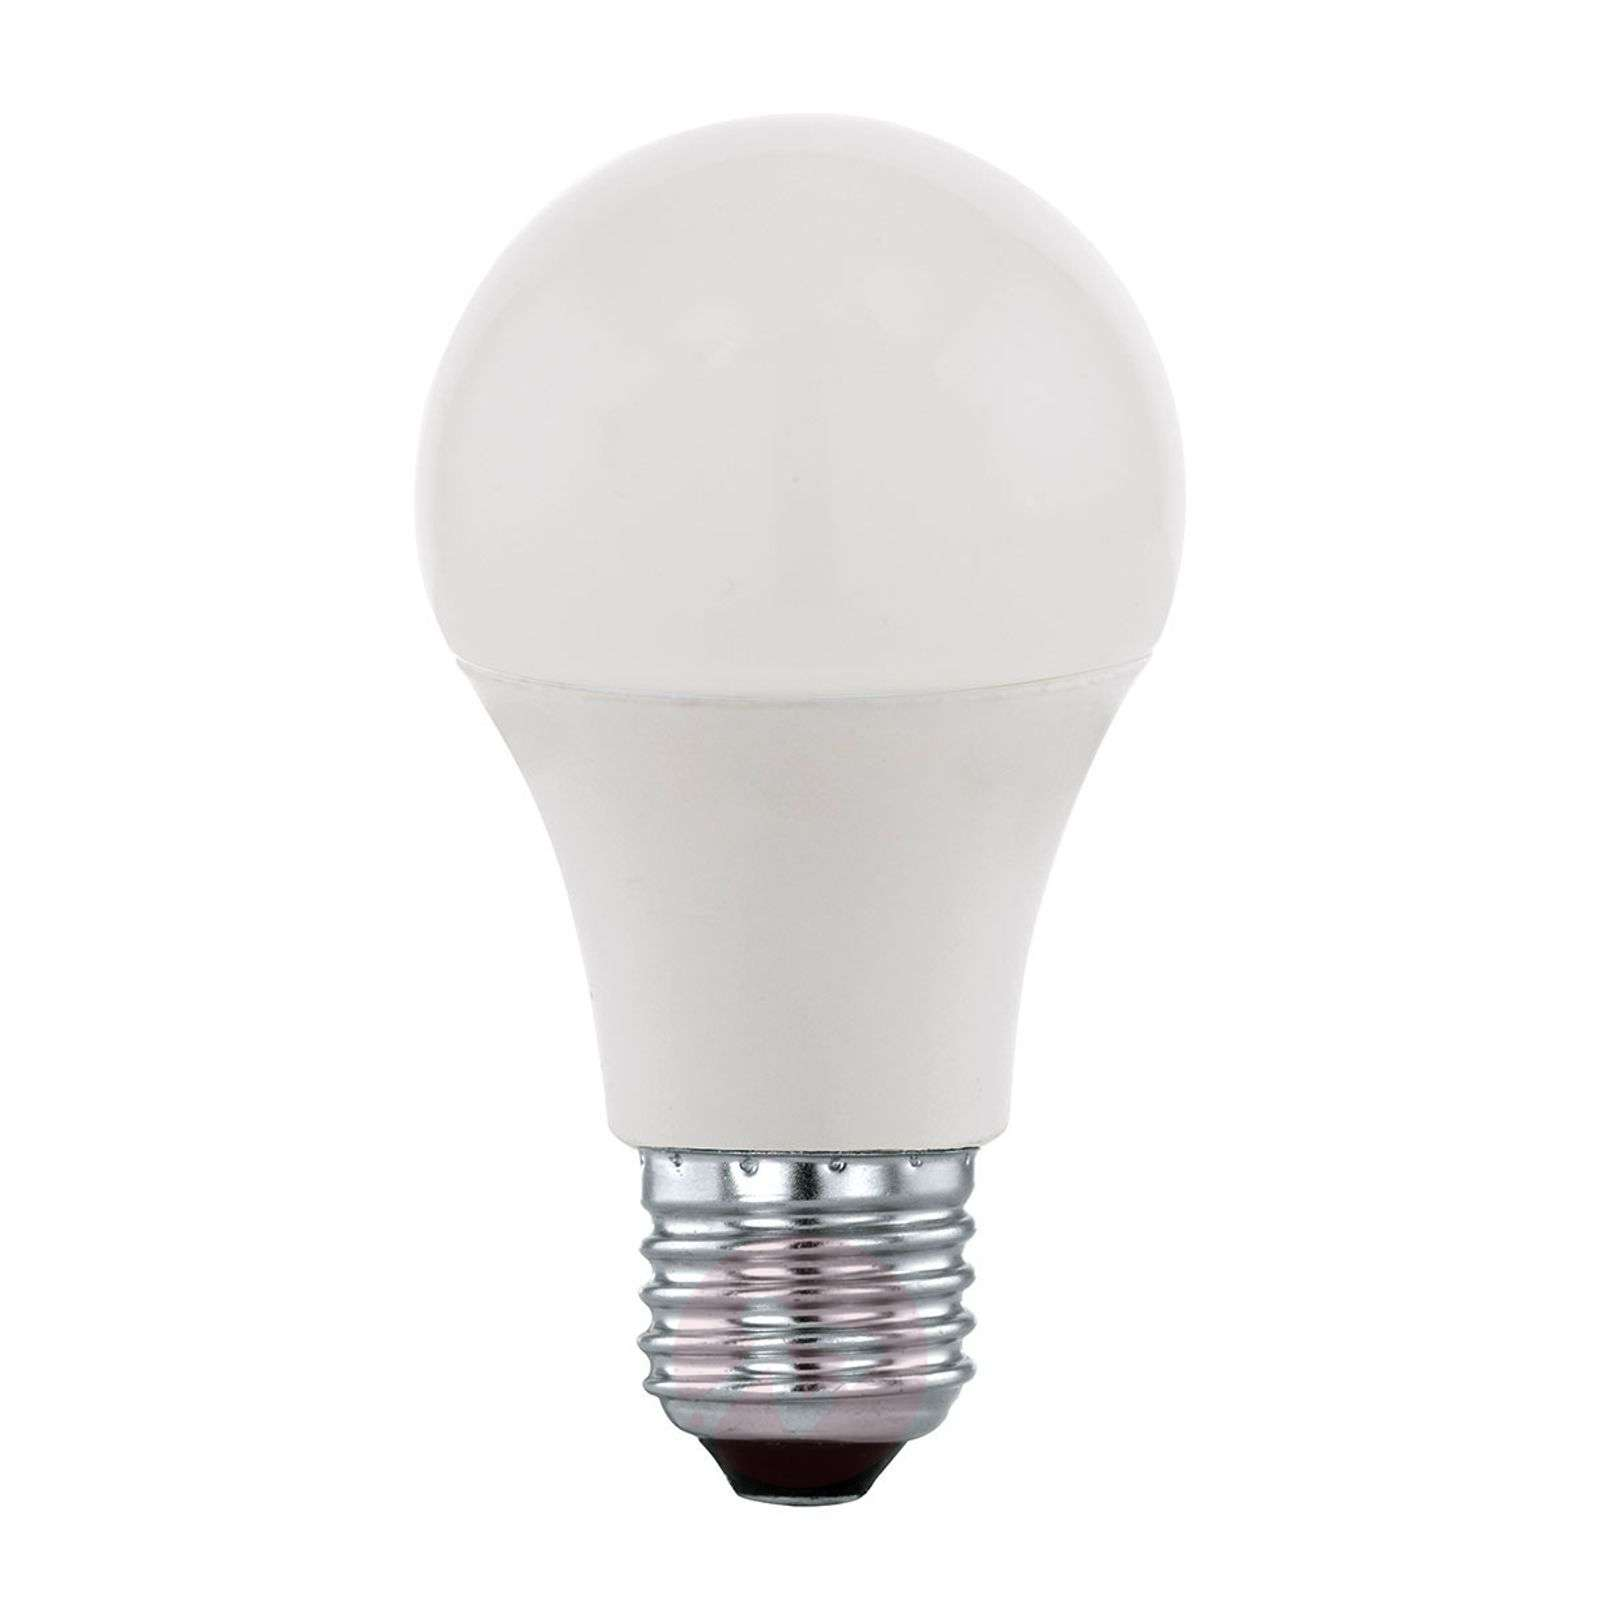 EGLO connect E27 9 W LED blanc chaud-3032146-03